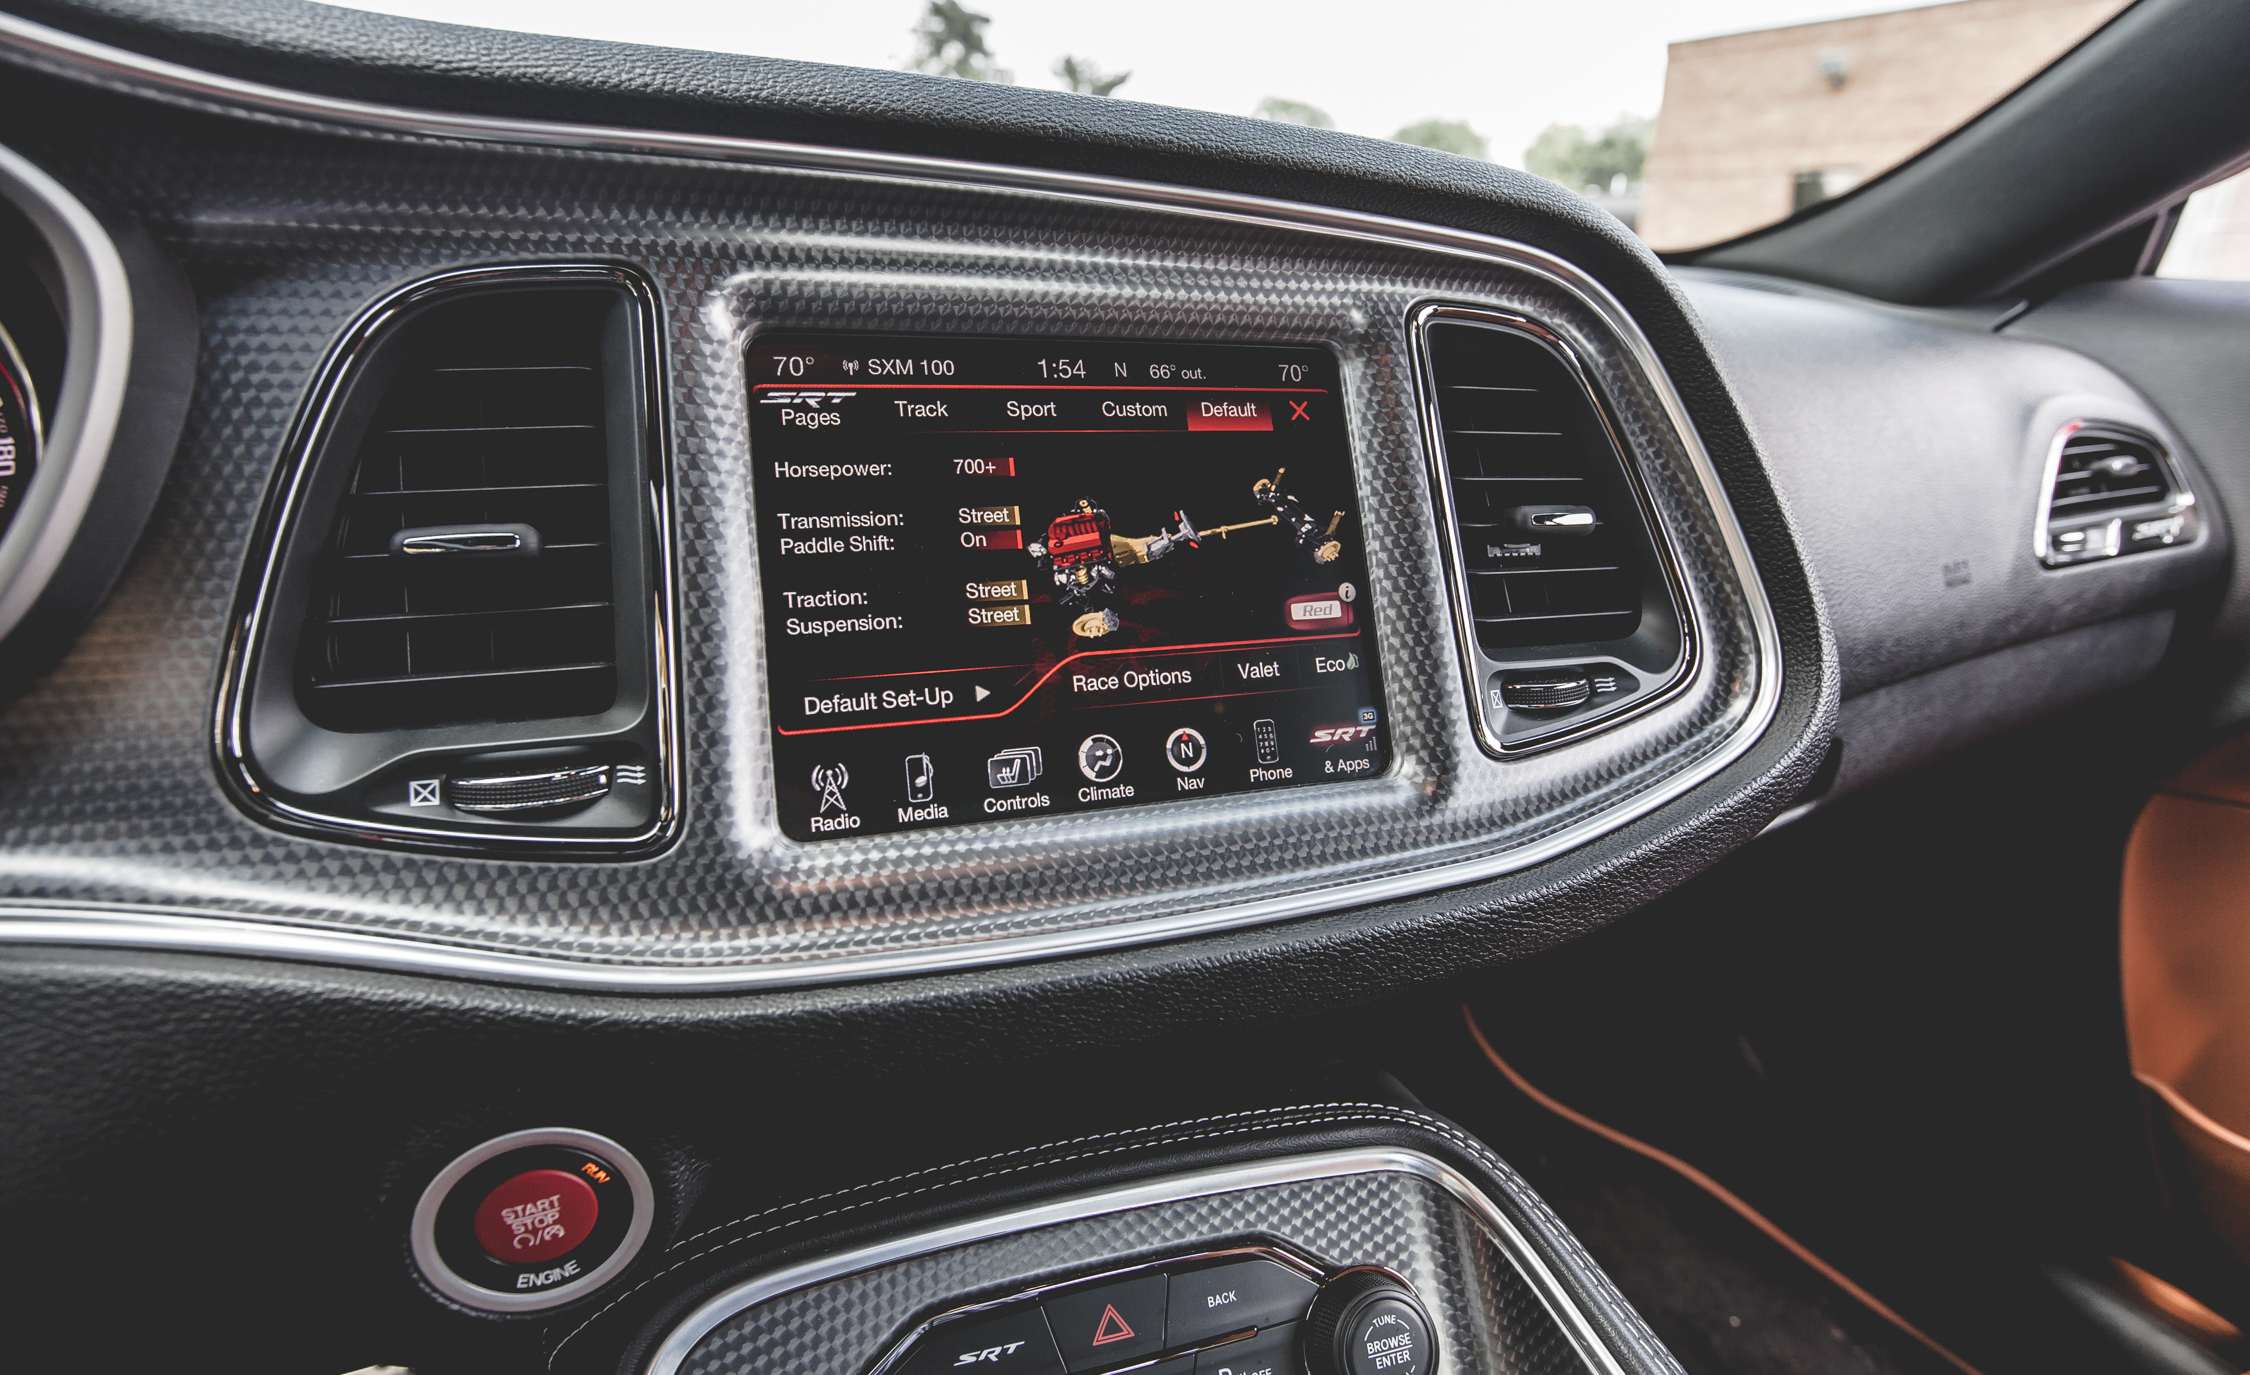 2015 Dodge Challenger Srt Hellcat Interior Gallery Photo 20 Of 22